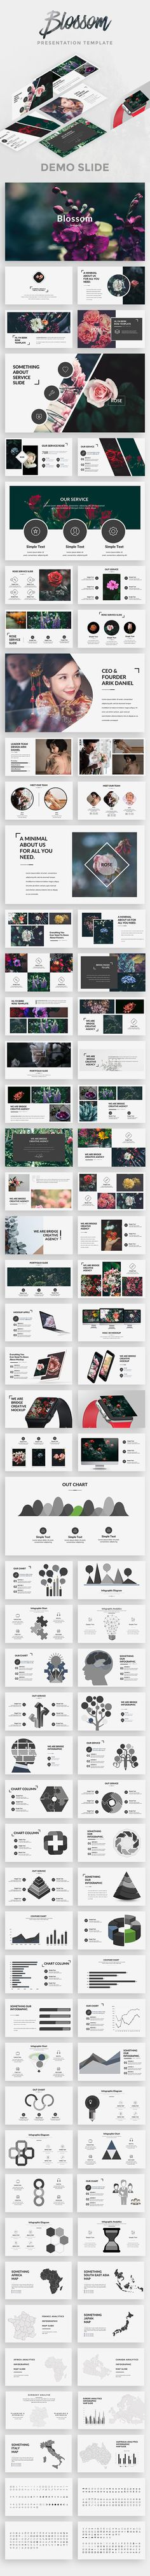 Gallia creative powerpoint template ppt pptxagency presentation buy blossom creative powerpoint template by on graphicriver features 95 unique slides aspect ratio no more broken images easy and fully editable in ccuart Gallery